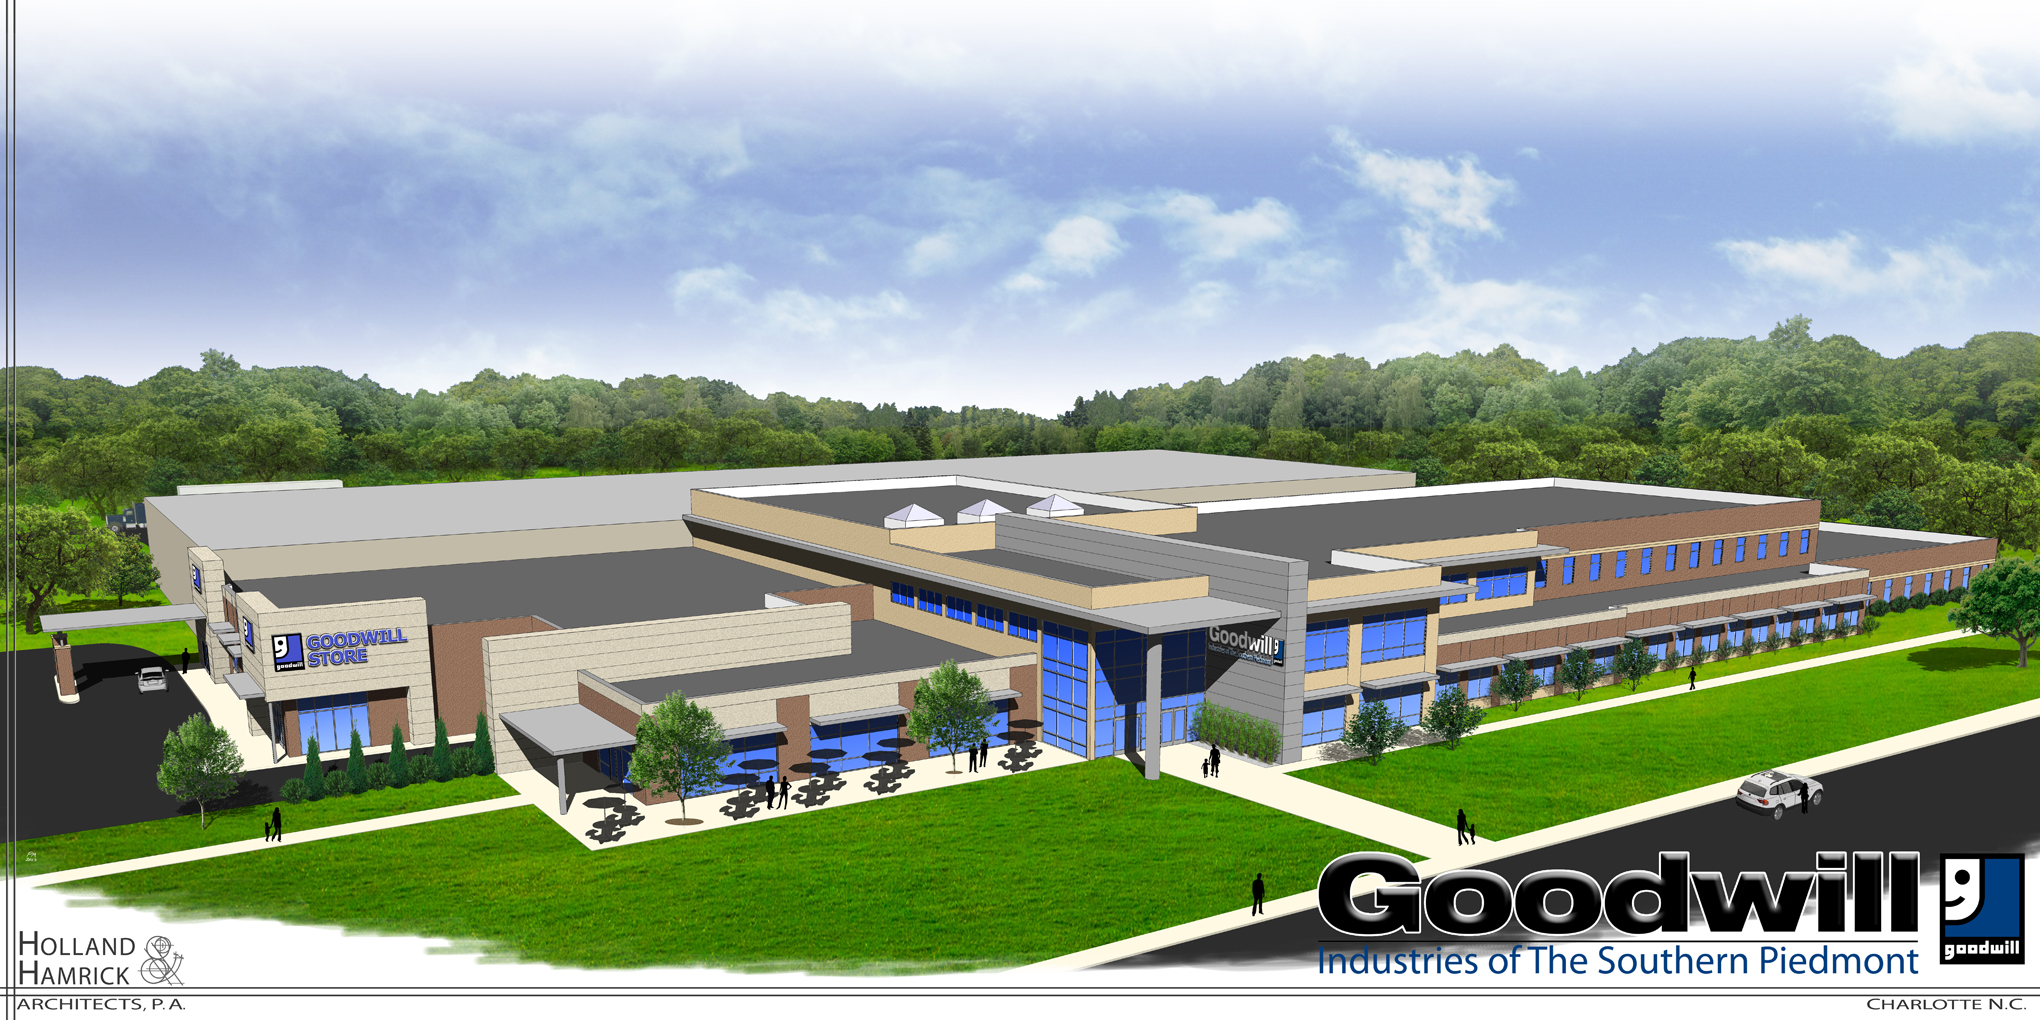 rendering of Goodwill Campus on Wilkinson Blvd, Charlotte, NC